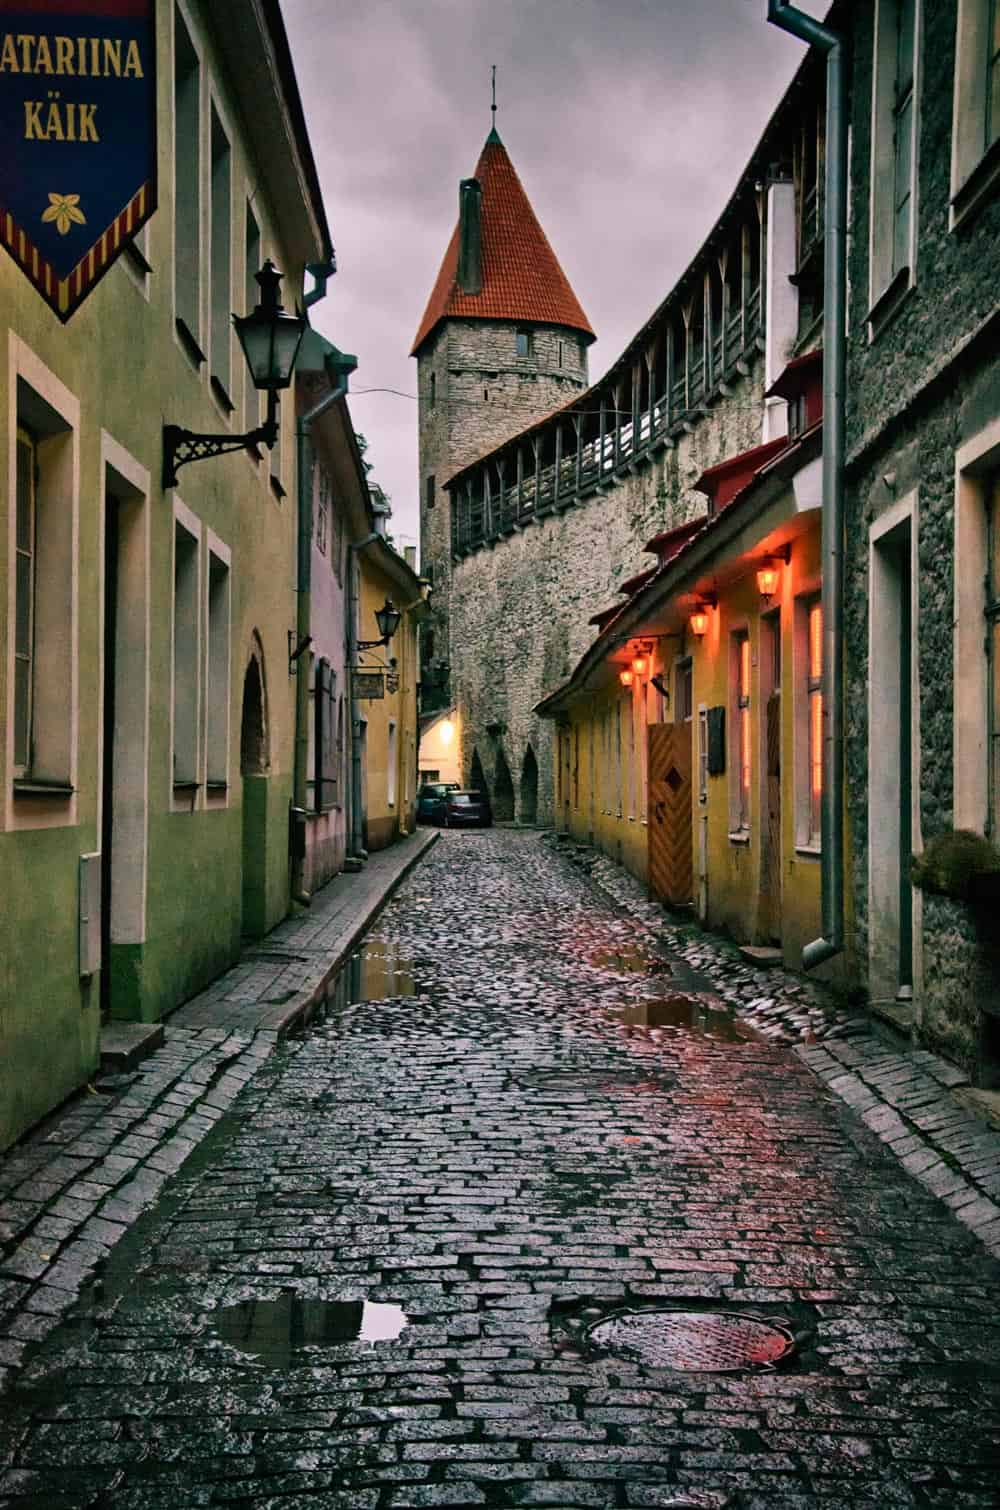 Watchtower Overlooking Alley in Old Town Tallinn, Estonia